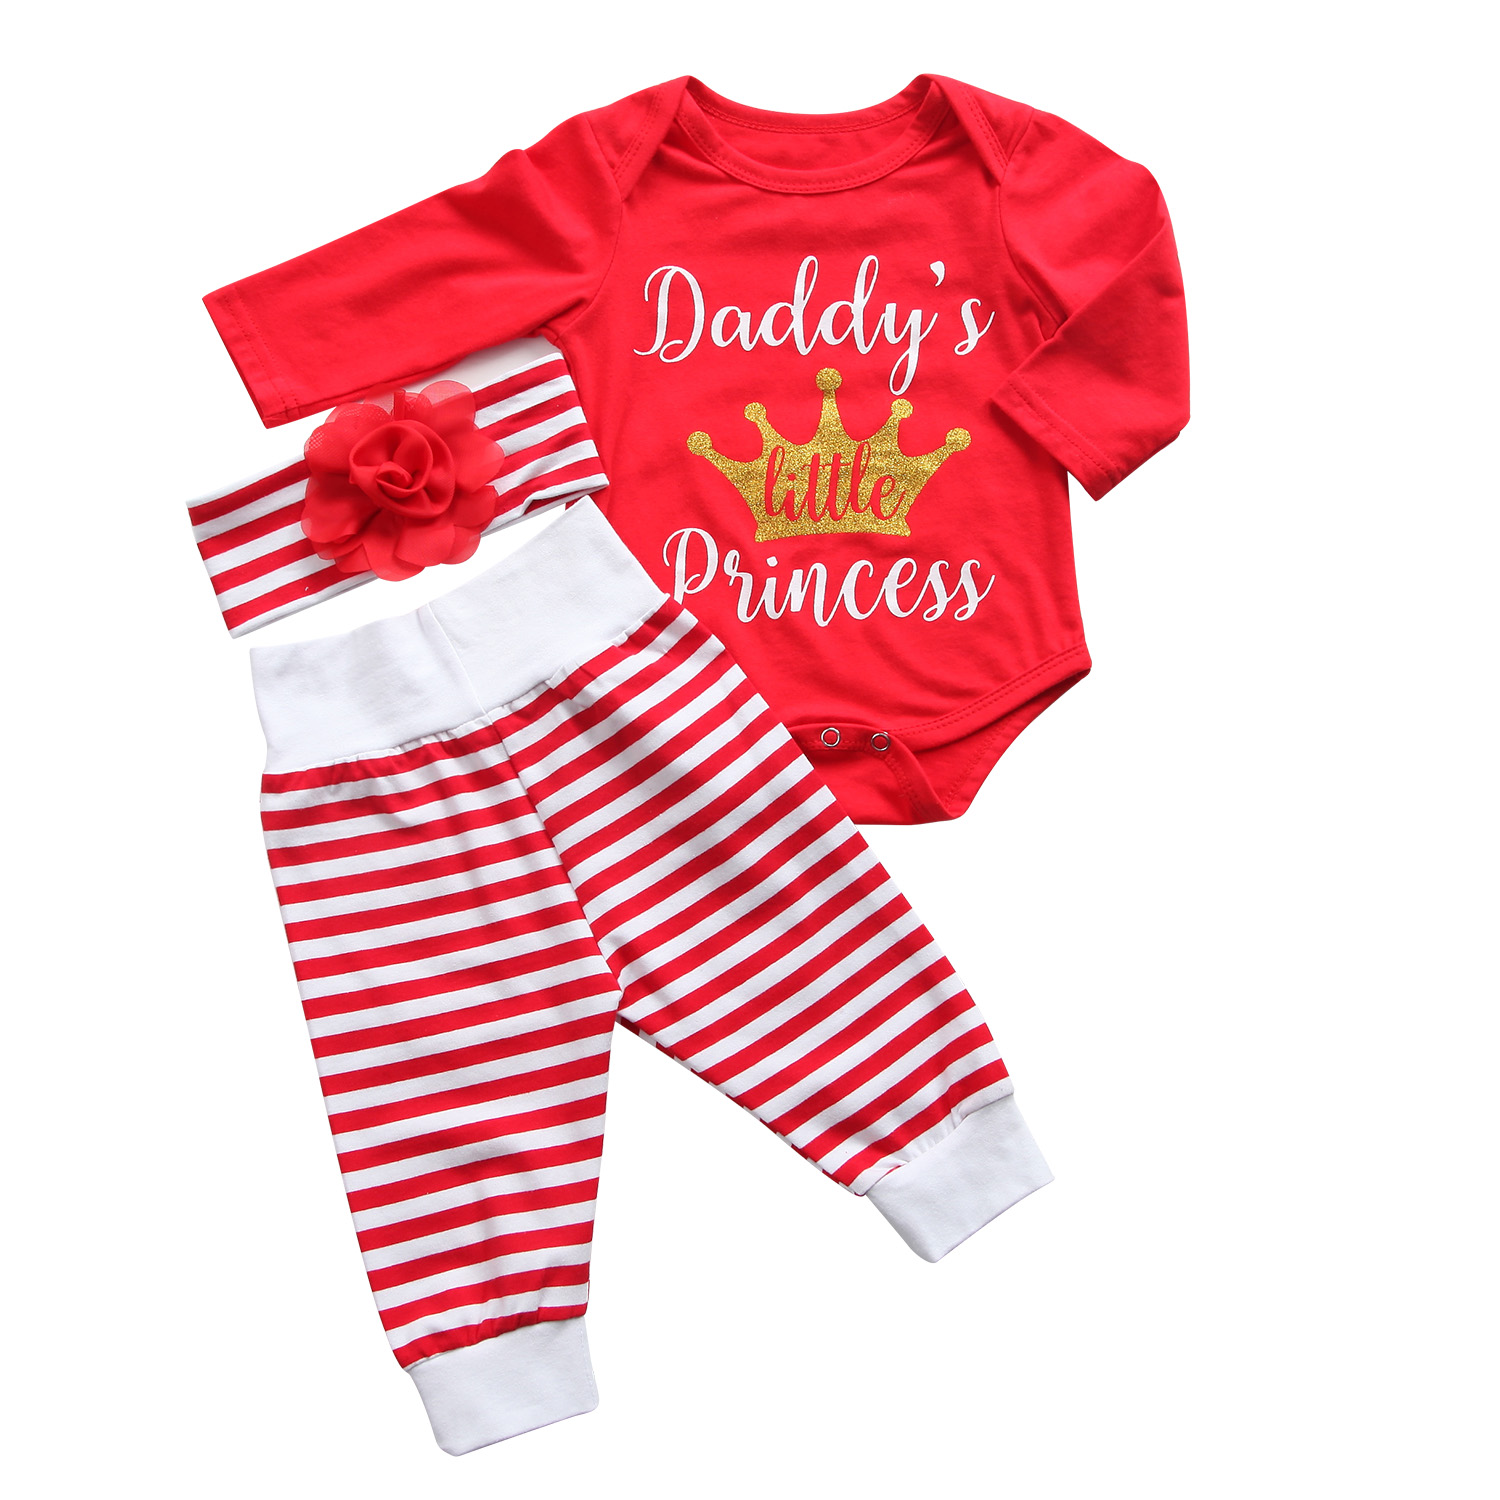 2017 Babies Red Clothing 3Ps Newborn Infant Baby Daddy Girl Playsuit Jumpsuit Romper Pants Outfit Clothes